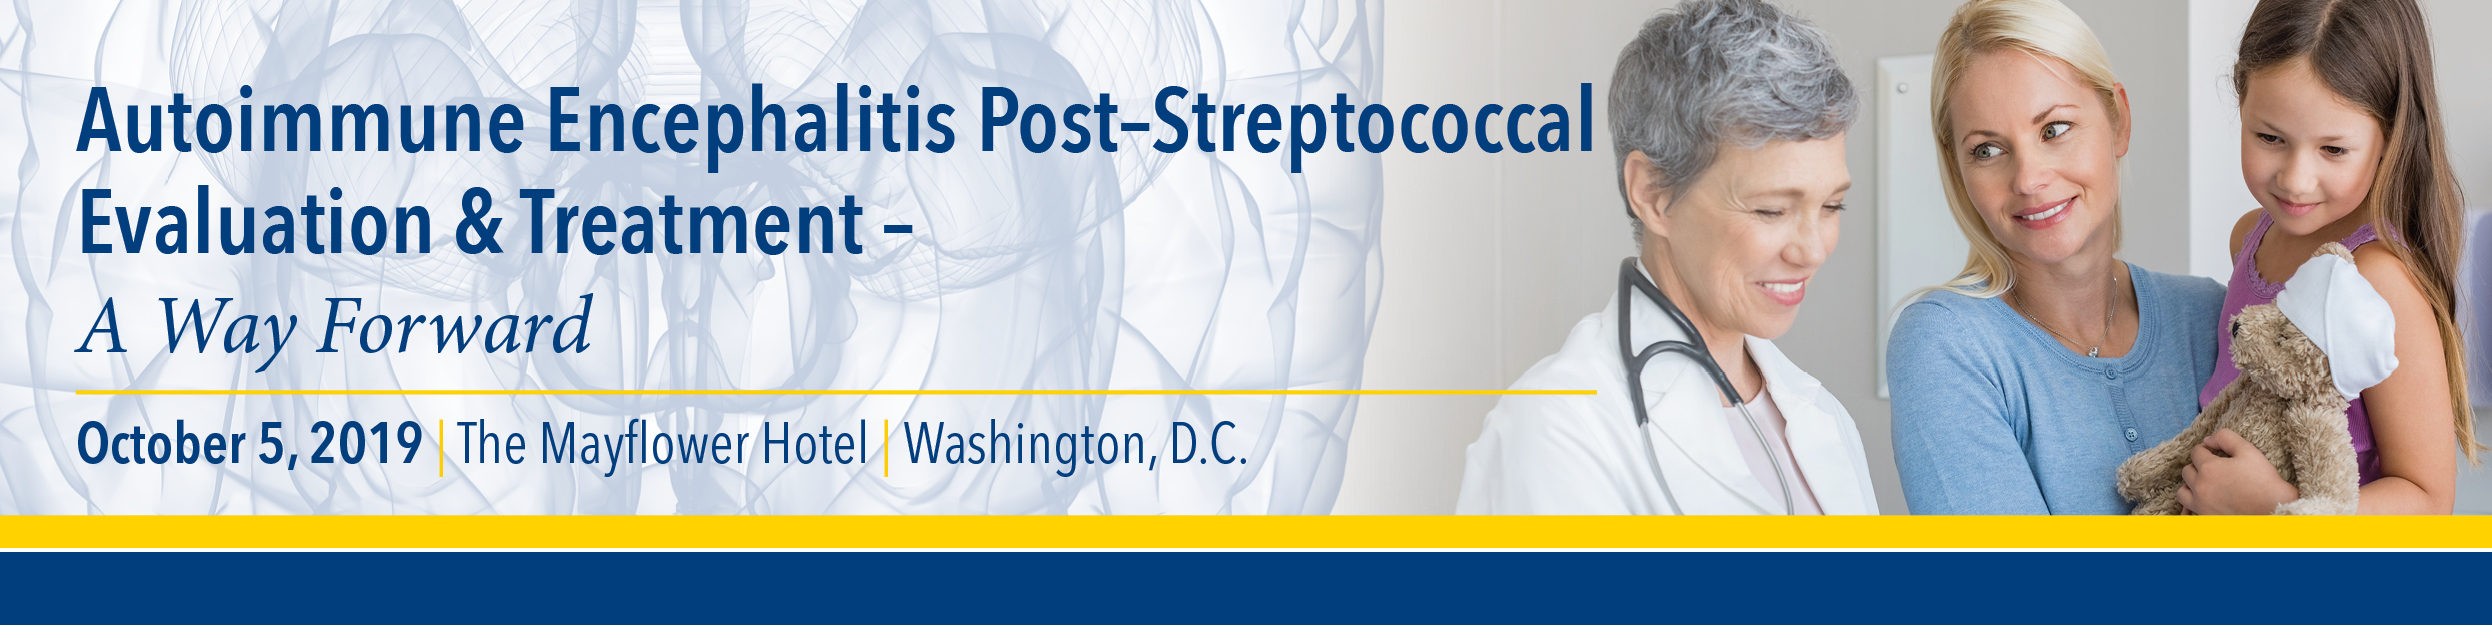 2019 Autoimmune Encephalitis Post Streptococcal Evaluation & Treatment; A Way Forward Banner